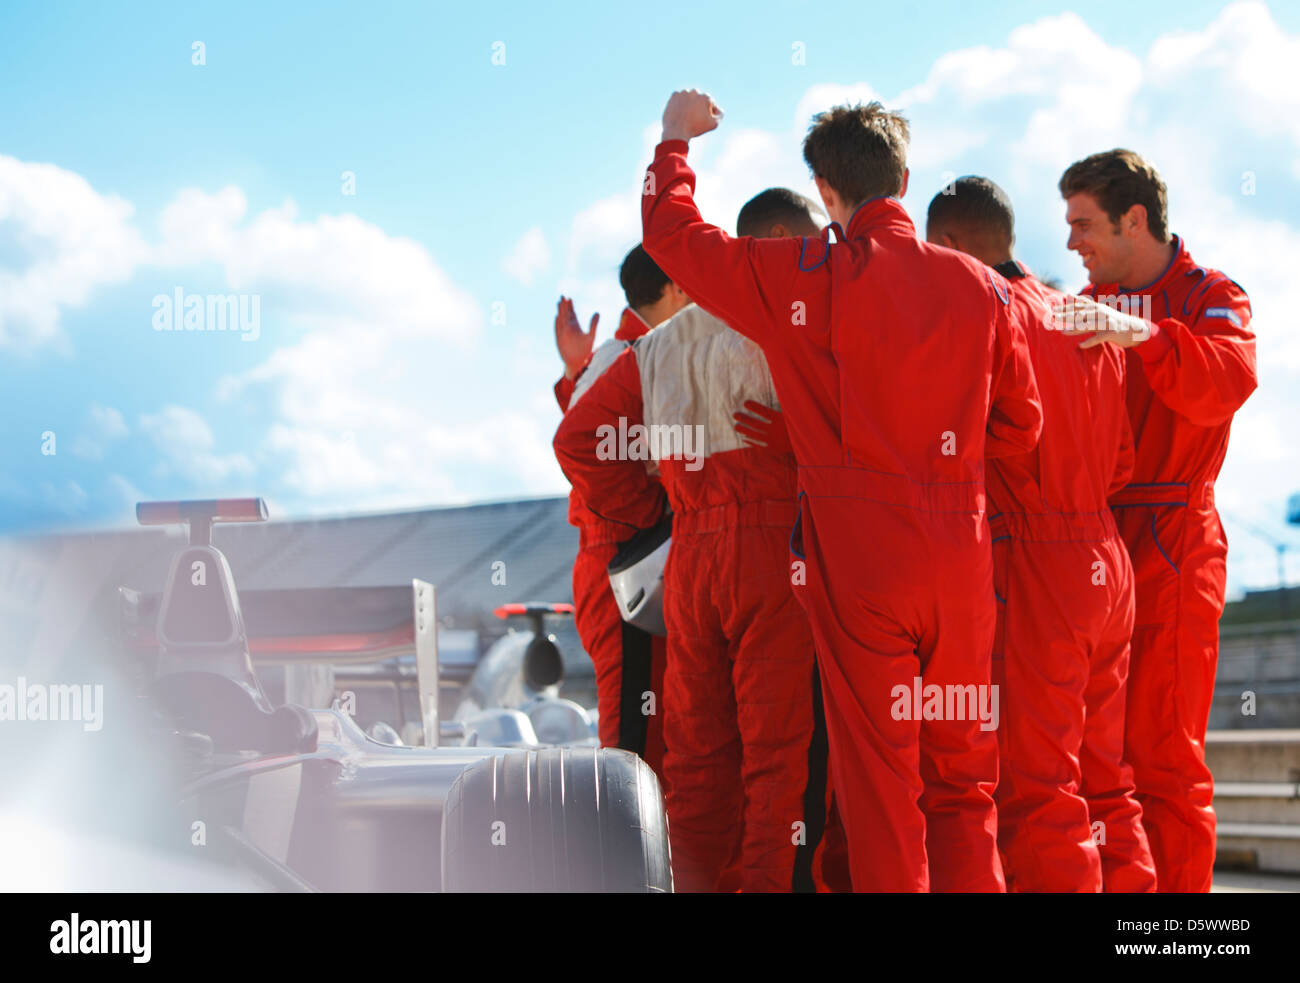 Racer and team cheering on track - Stock Image